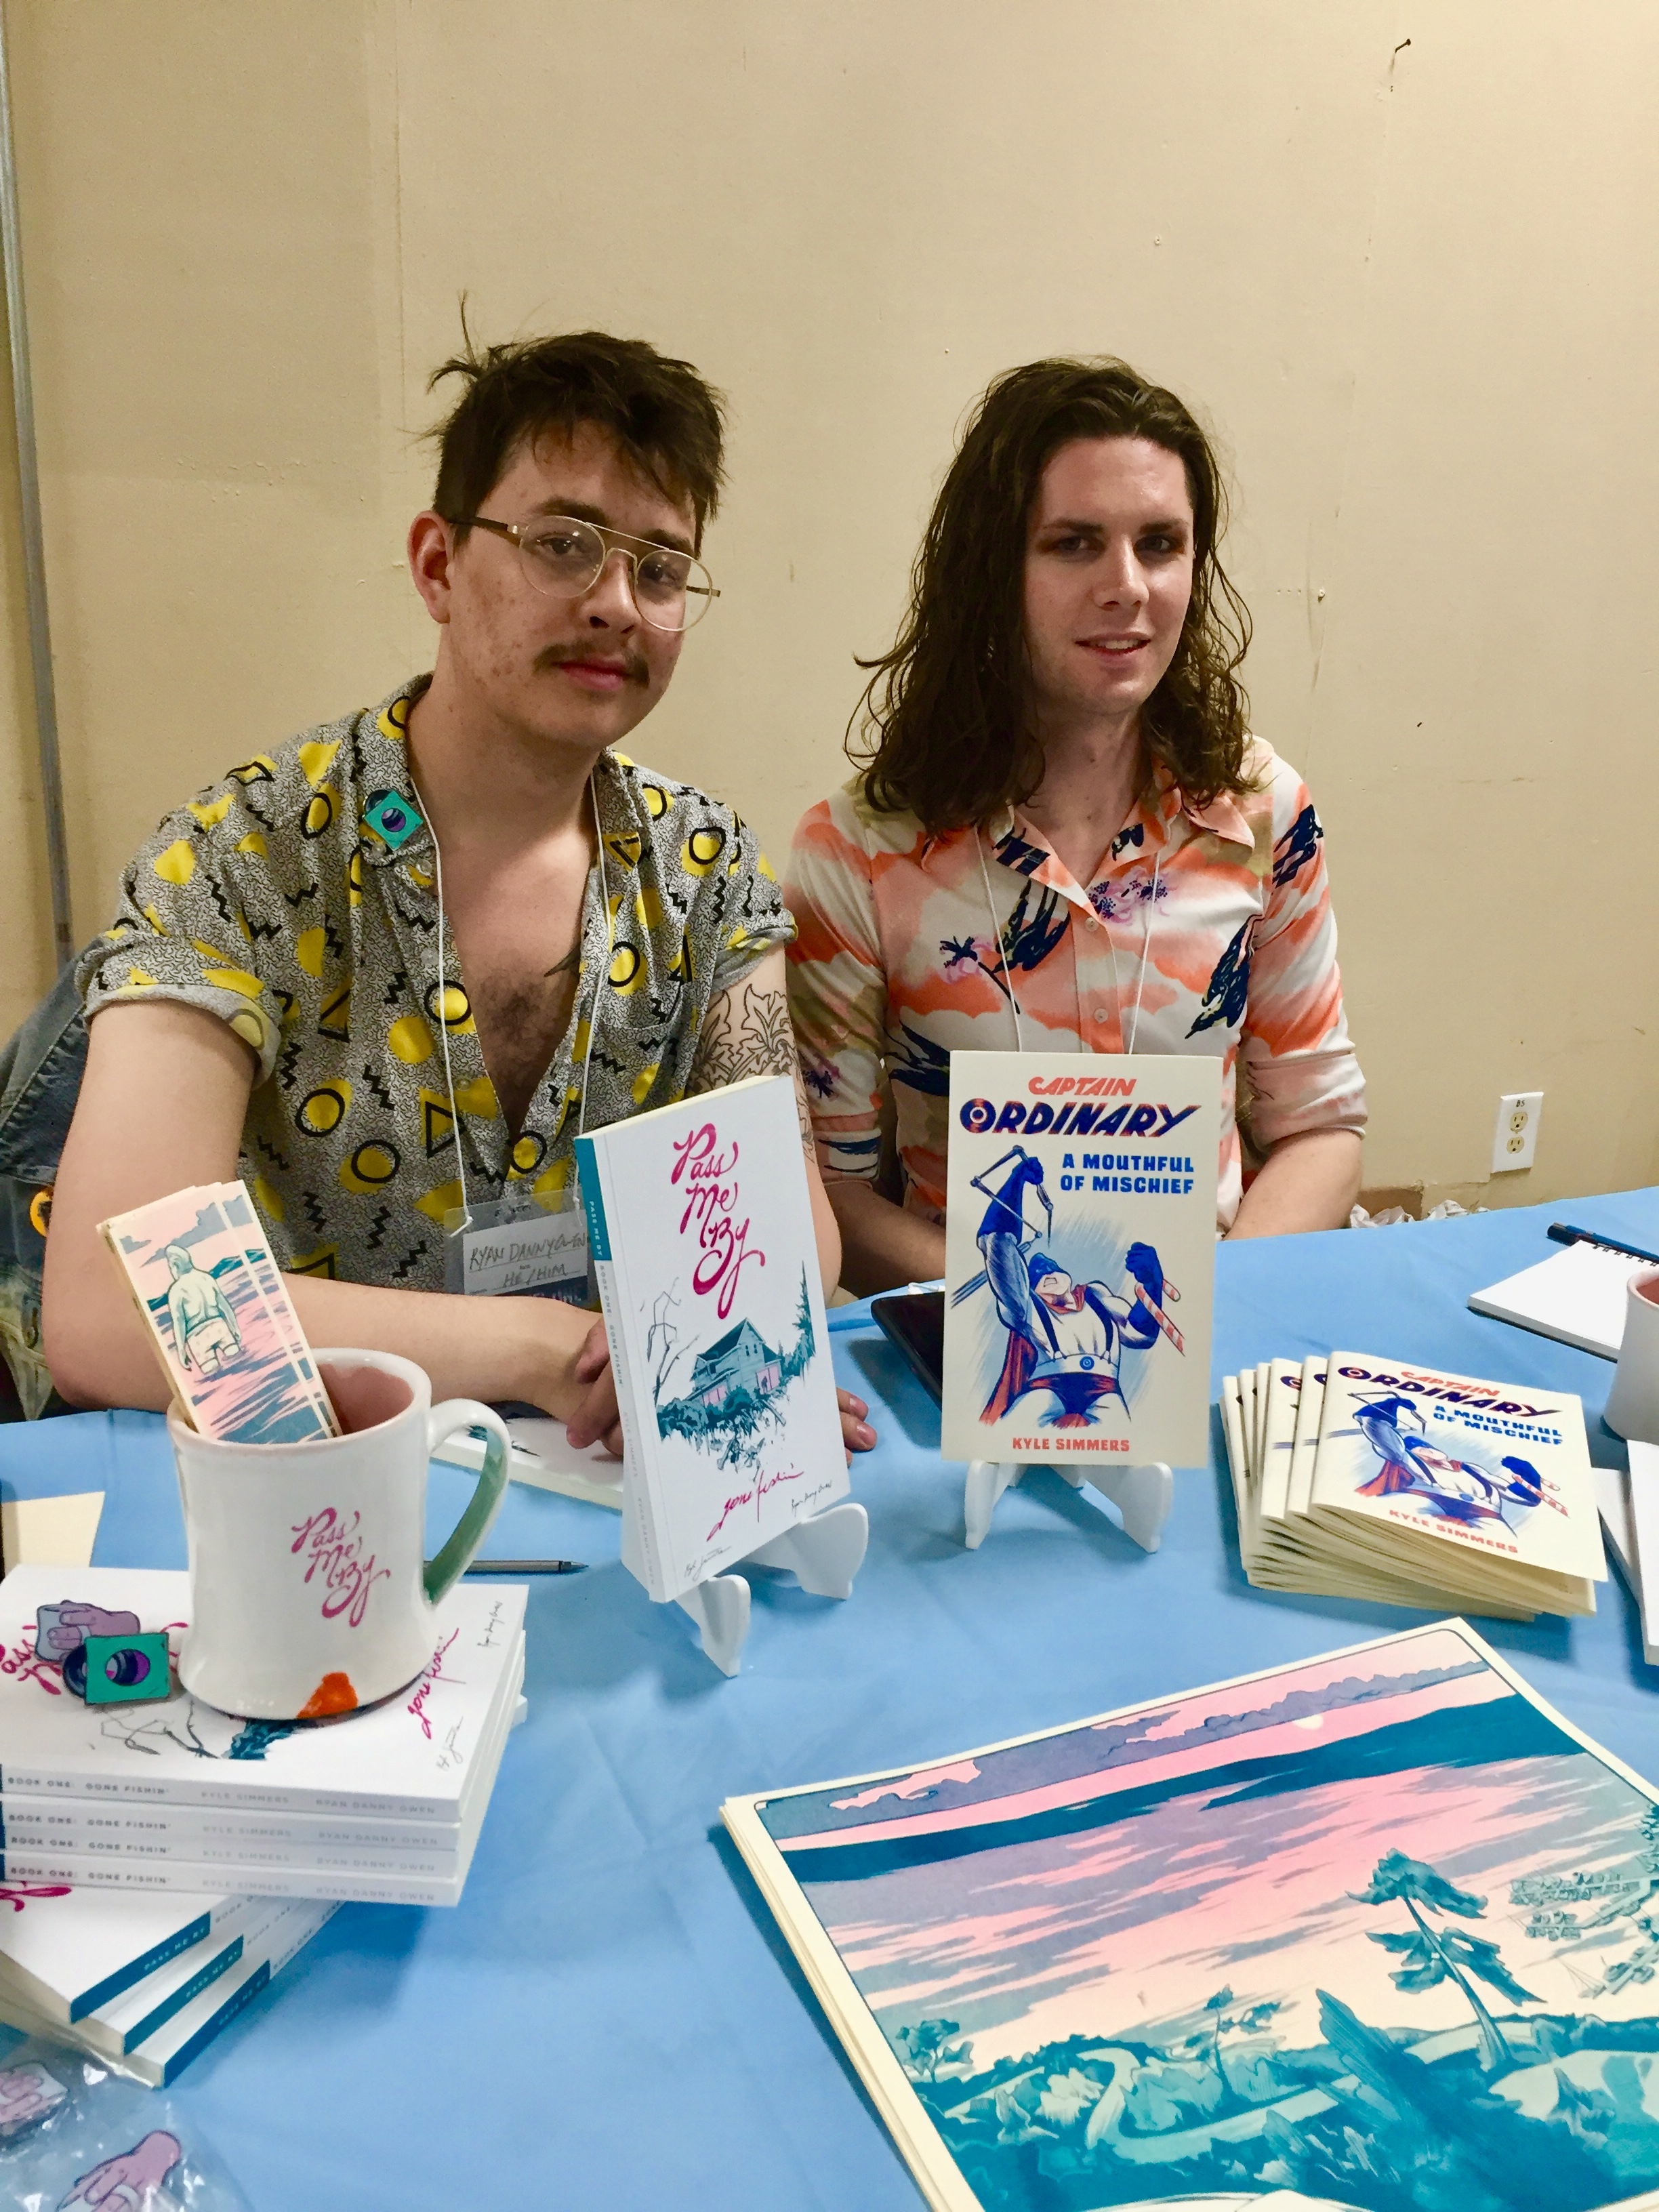 Ryan Danny Owen (left) and Kyle Simmers, creative team on Pass Me By, at the 2019 Panel One Comic Creator Festival  ( Photo credit: Chris Doucher/GeekNerdNet )